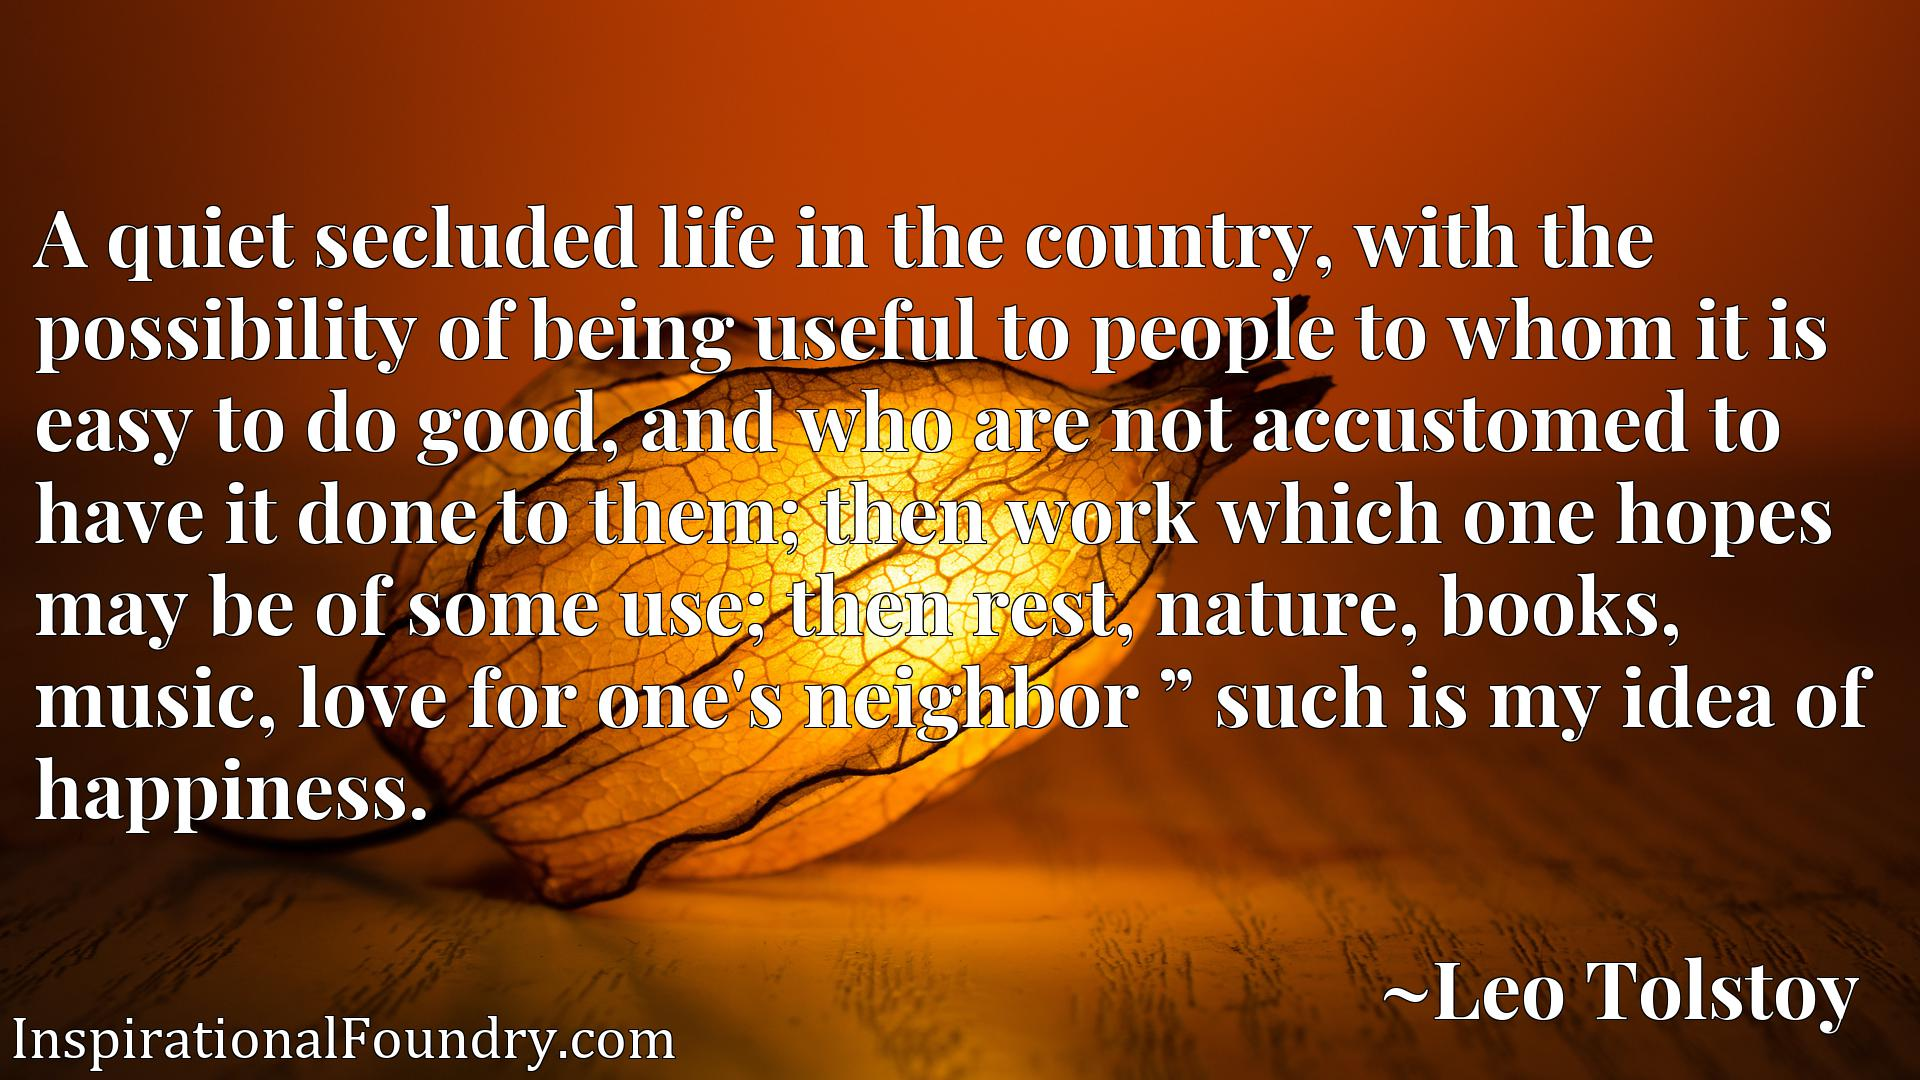 """A quiet secluded life in the country, with the possibility of being useful to people to whom it is easy to do good, and who are not accustomed to have it done to them; then work which one hopes may be of some use; then rest, nature, books, music, love for one's neighbor """" such is my idea of happiness."""